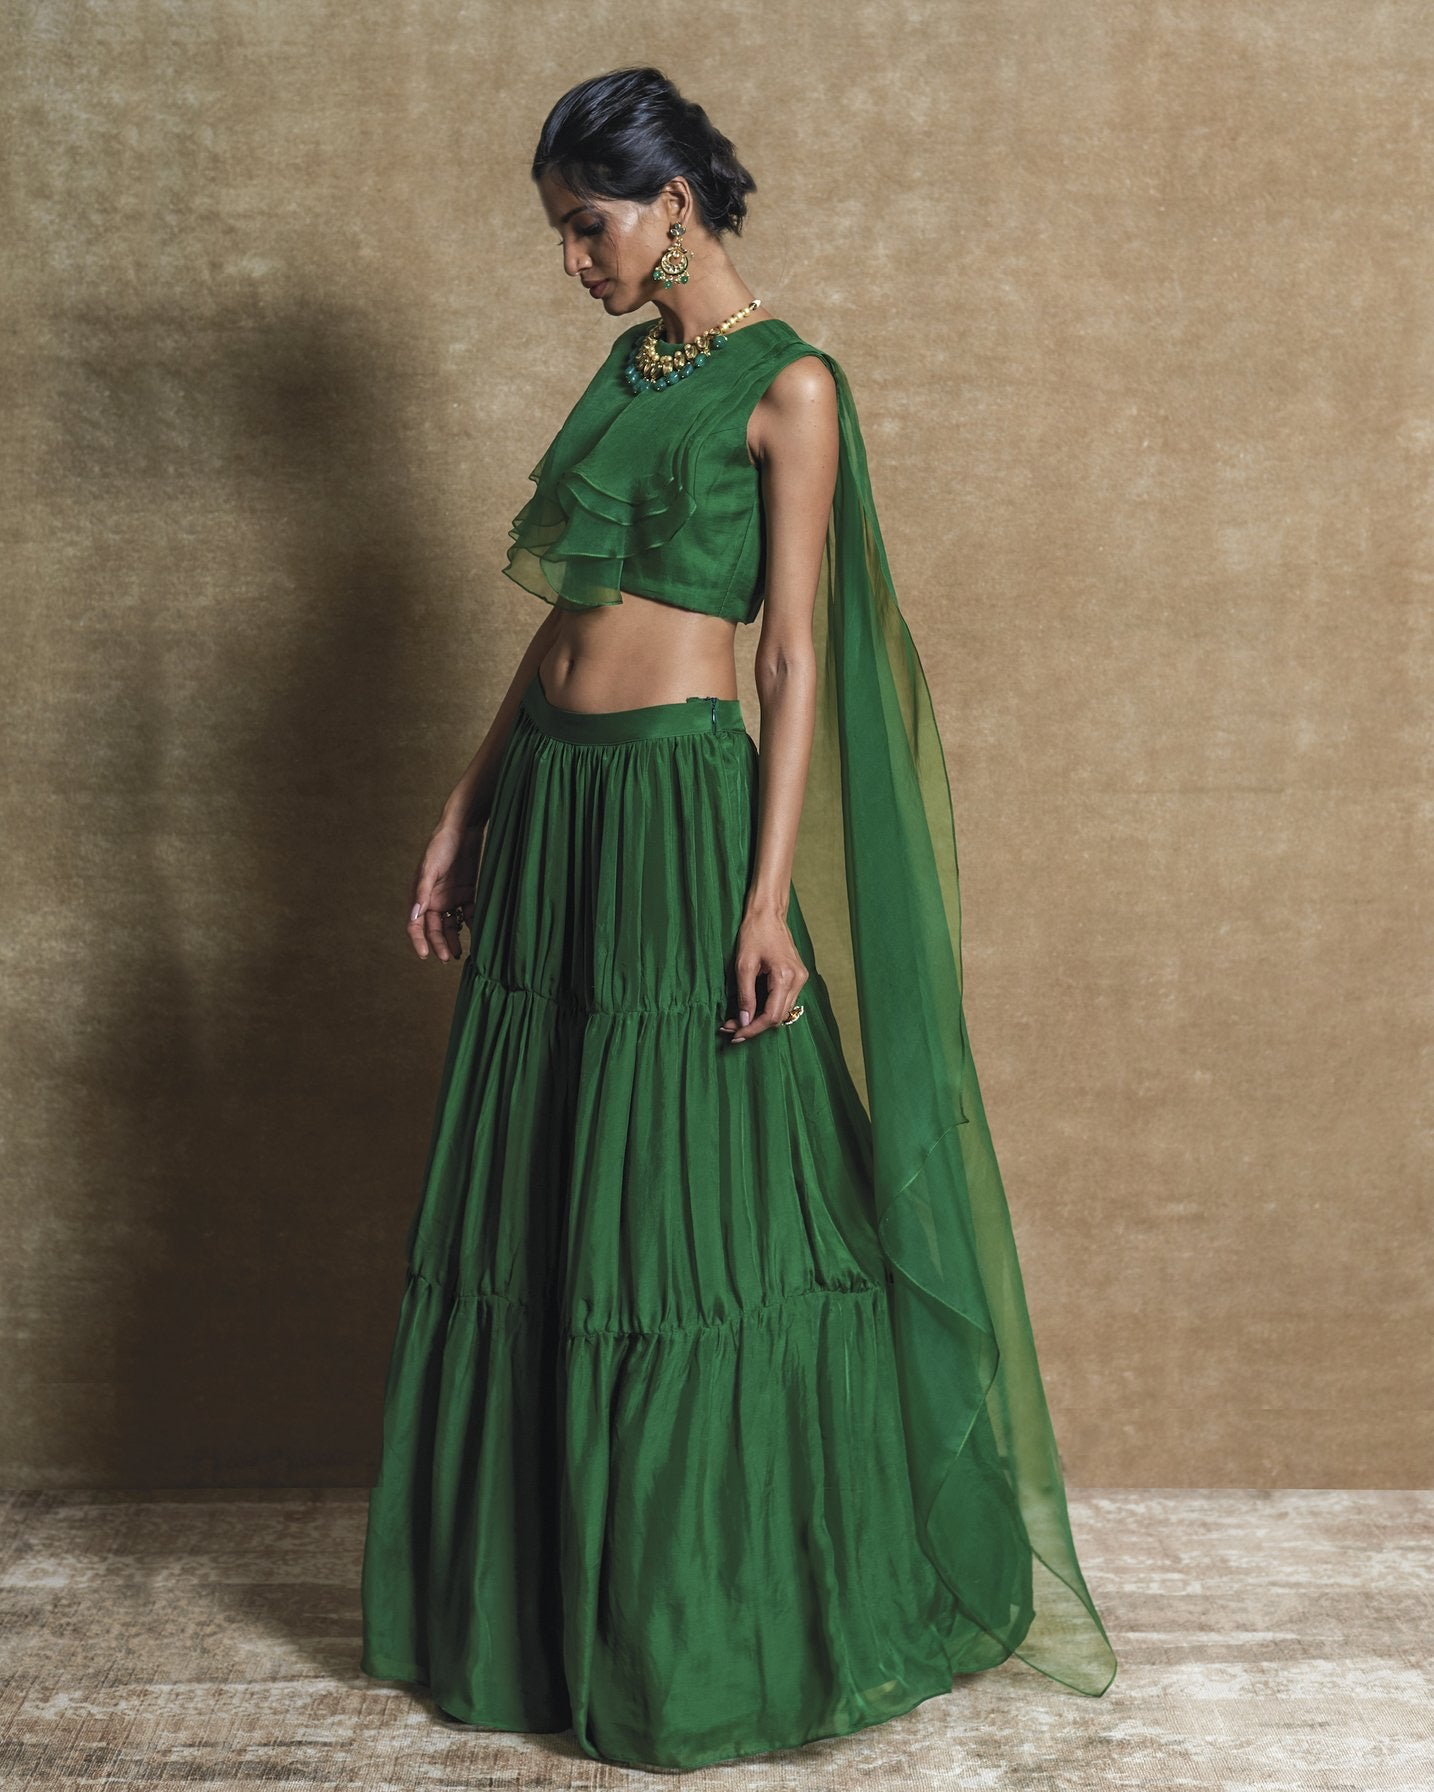 Green Drape Top with Tiered Skirt